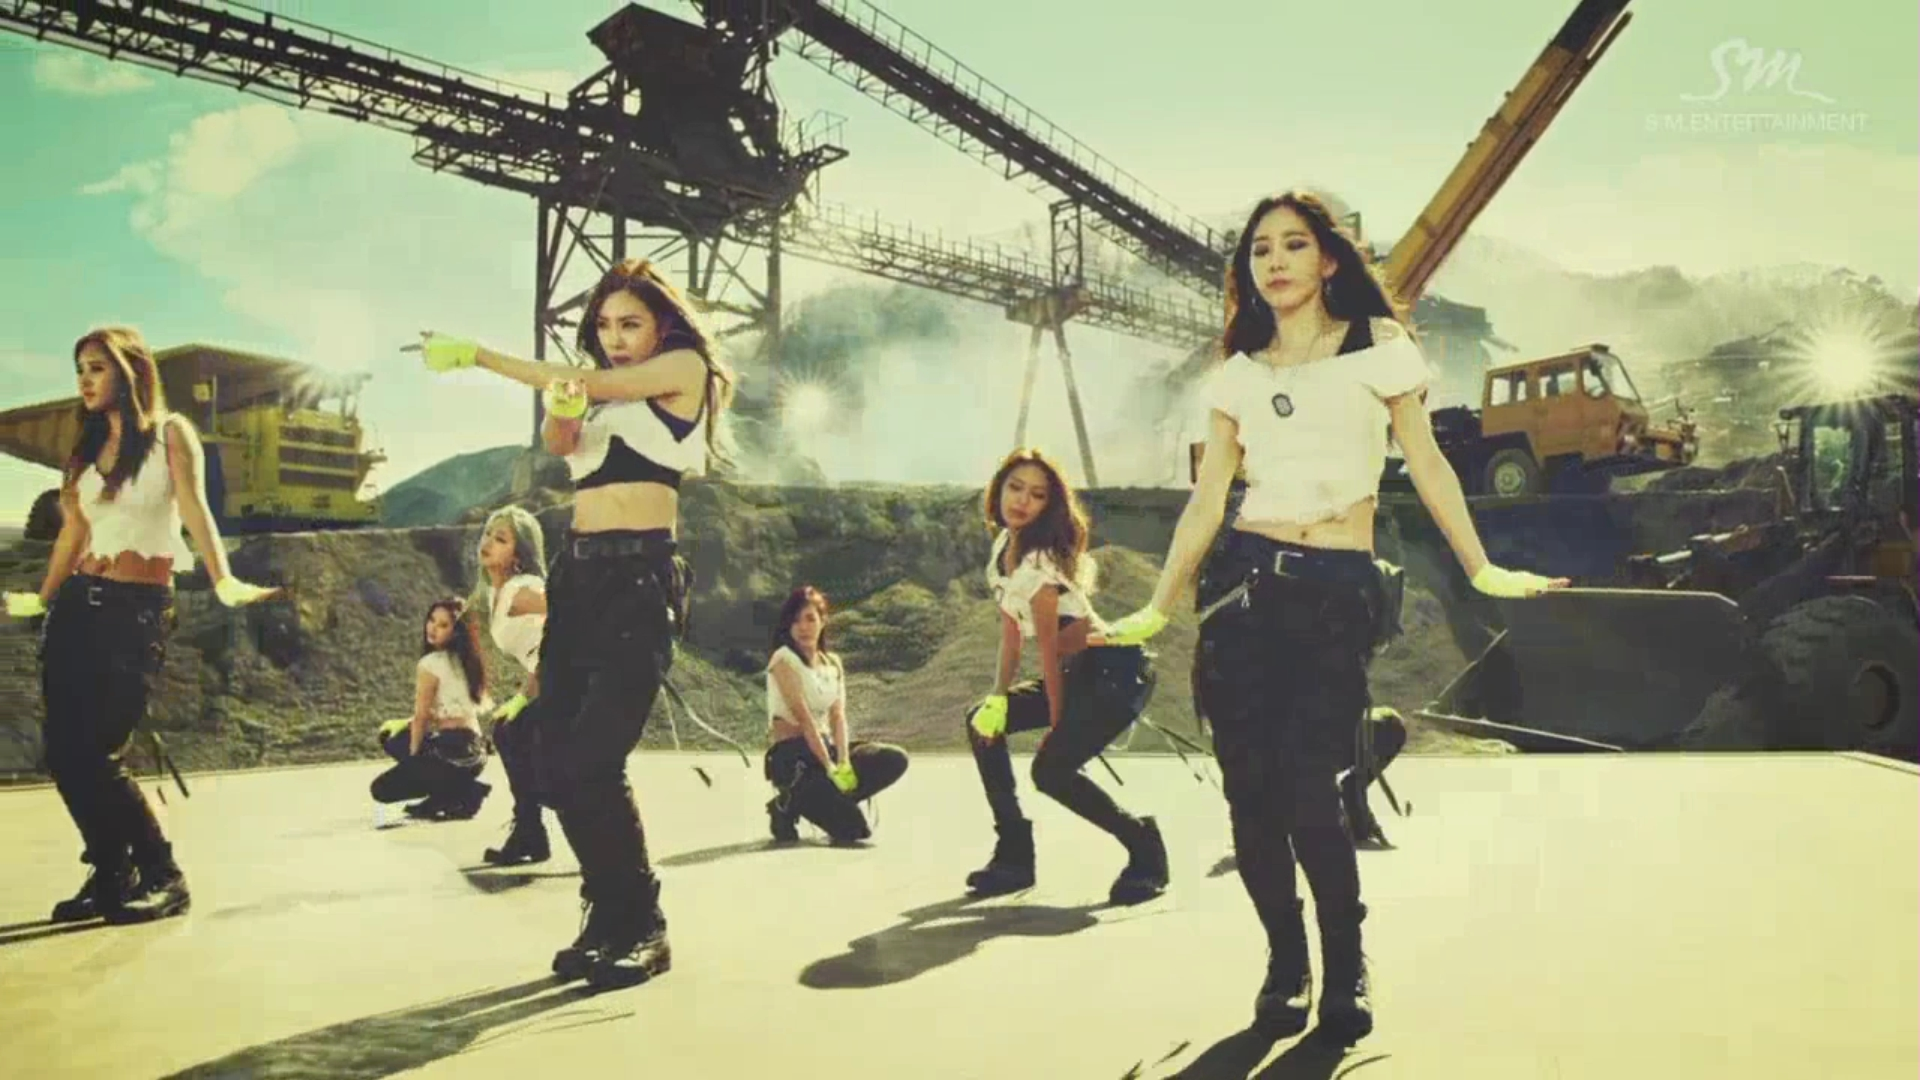 Snsd Change Direction In Catch Me If You Can Seoulbeats